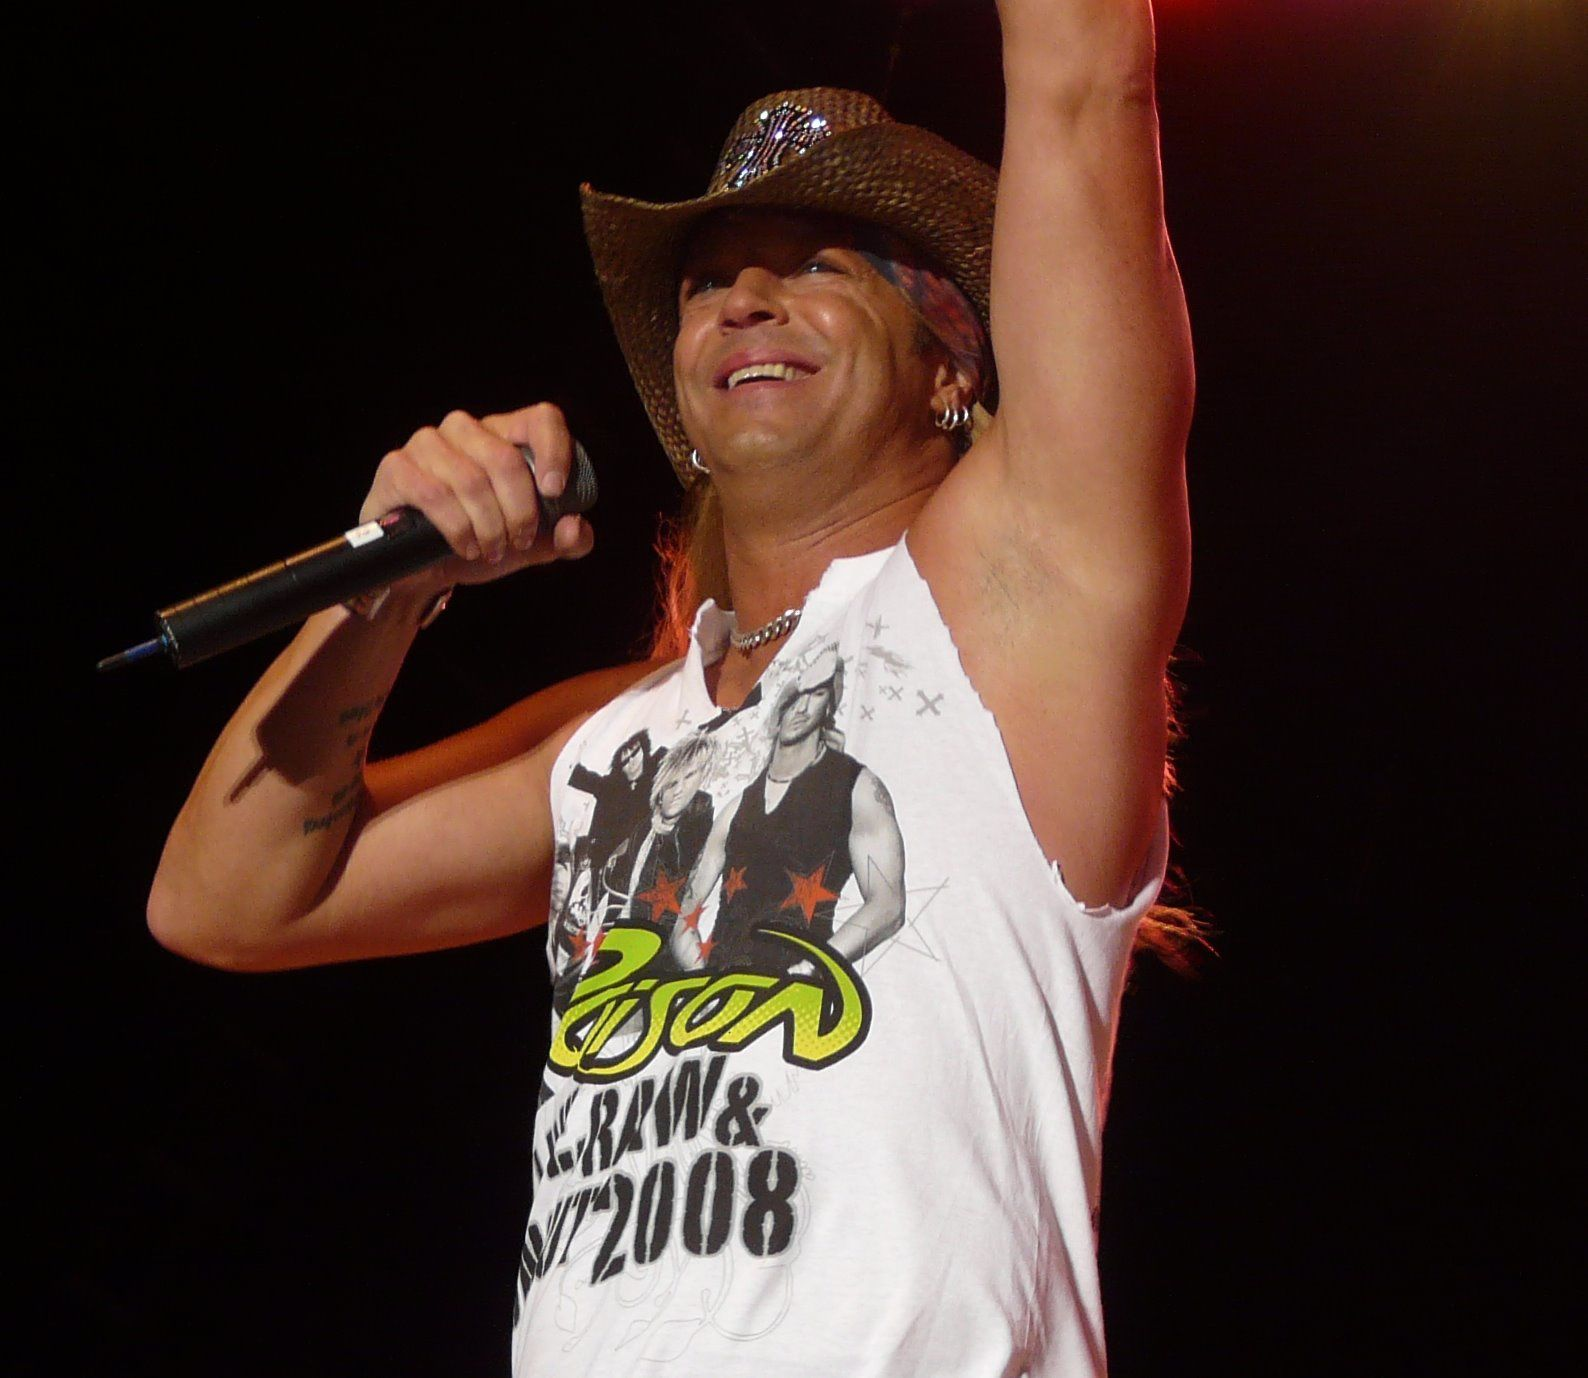 Bret Michaels - 2008, Jul. 11 - Live at the Moondance Jam (USA)